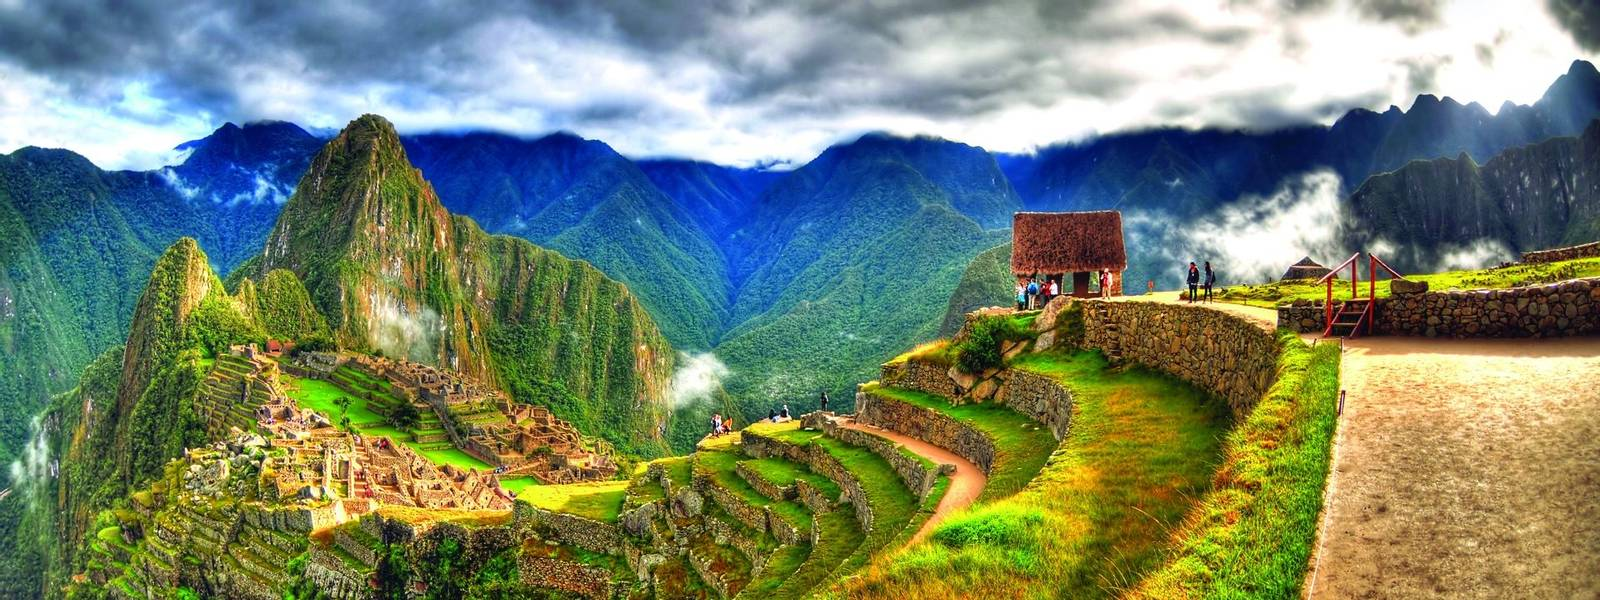 Panoramic HDR image of Machu Picchu, the lost city of the Incas on a cloudy day. Machu Picchu is one of the new 7 Wonder of …